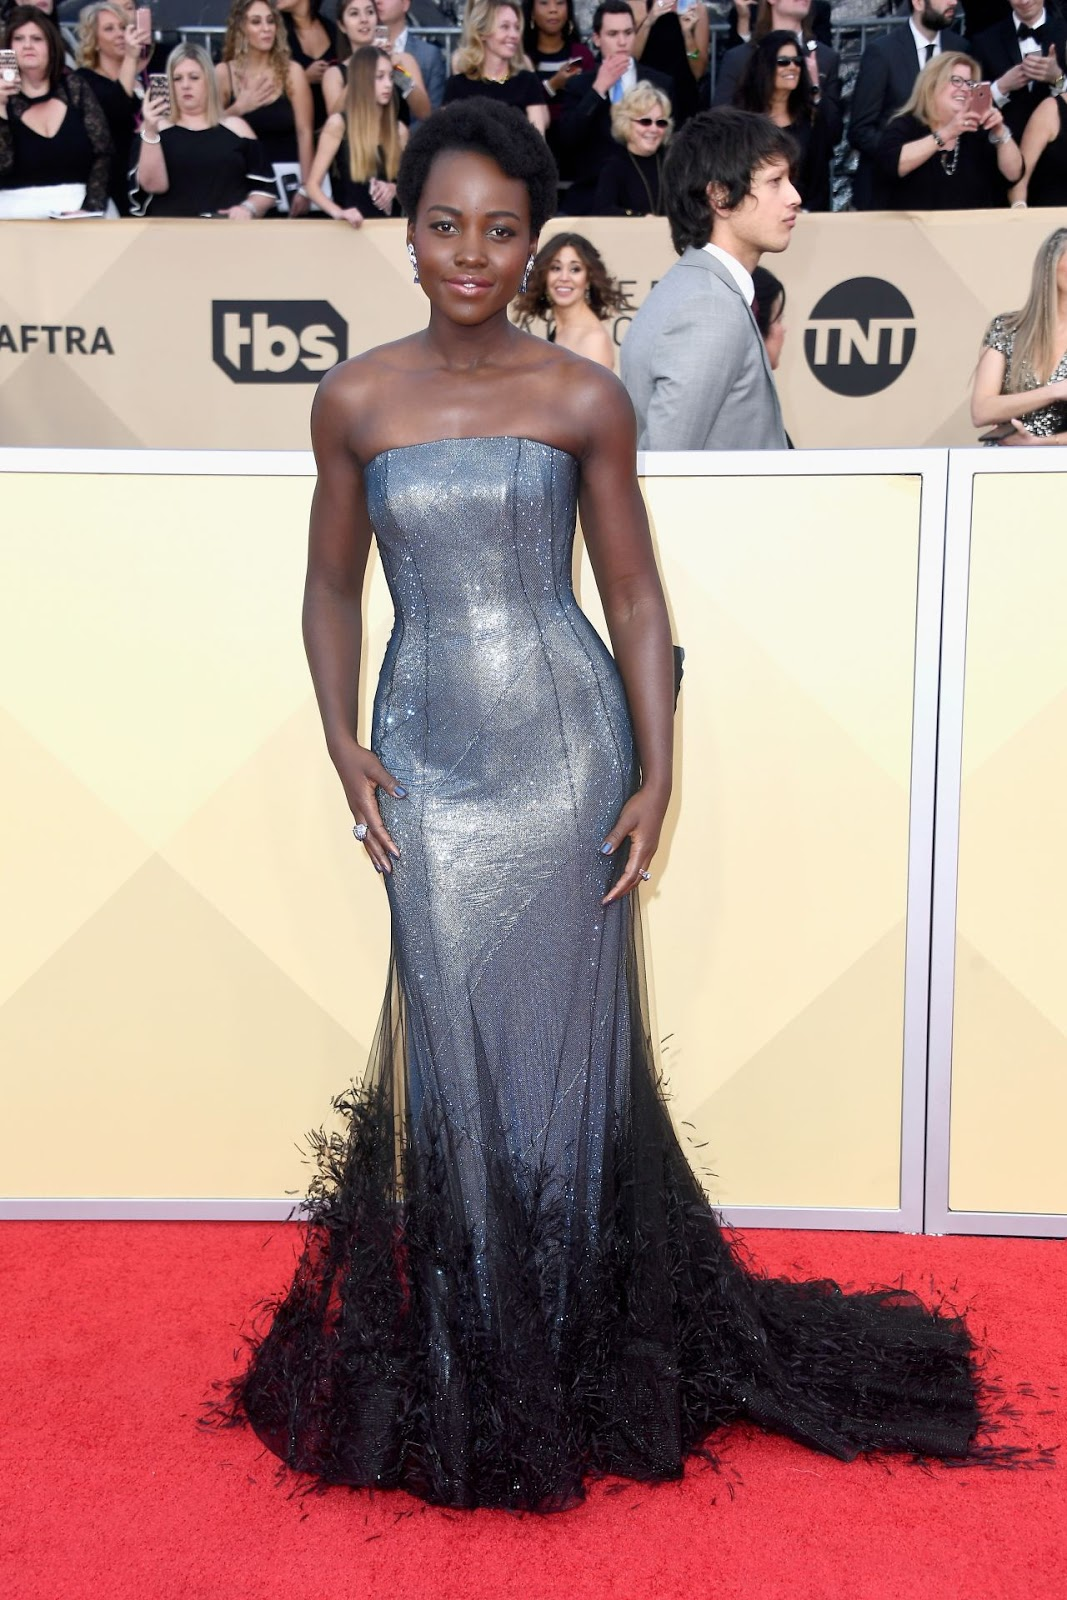 Lupita Nyong'o shimmers in silver at the 2018 SAG Awards